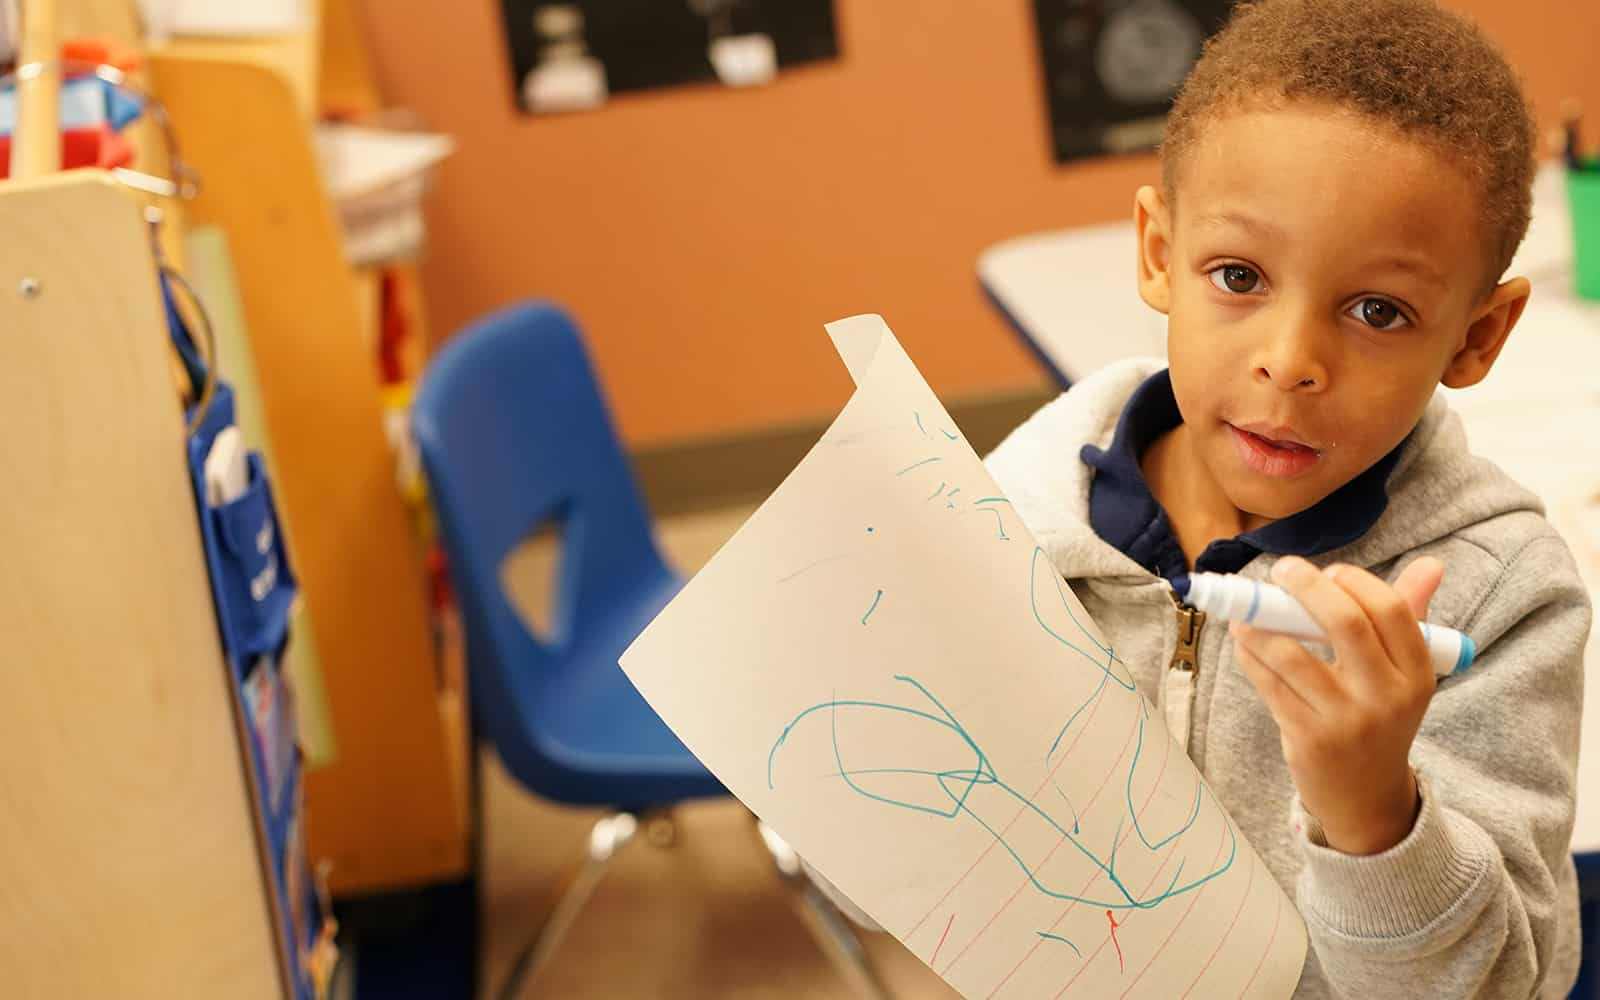 Educare boy drawing on paper with marker